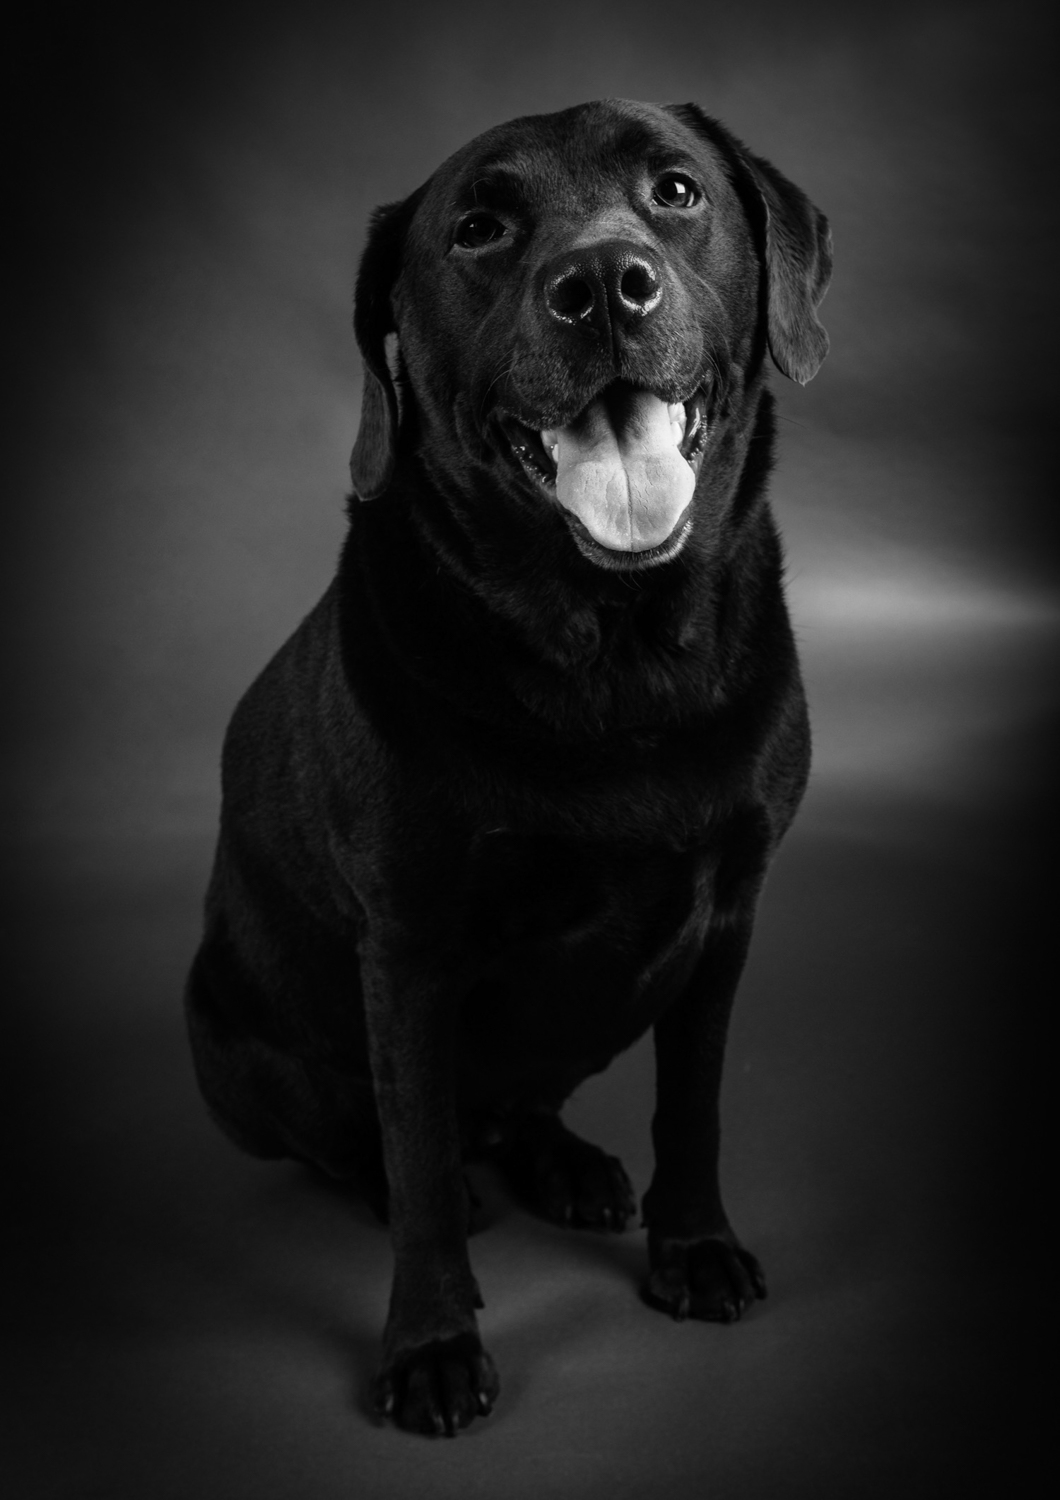 pet-portrait-19-55